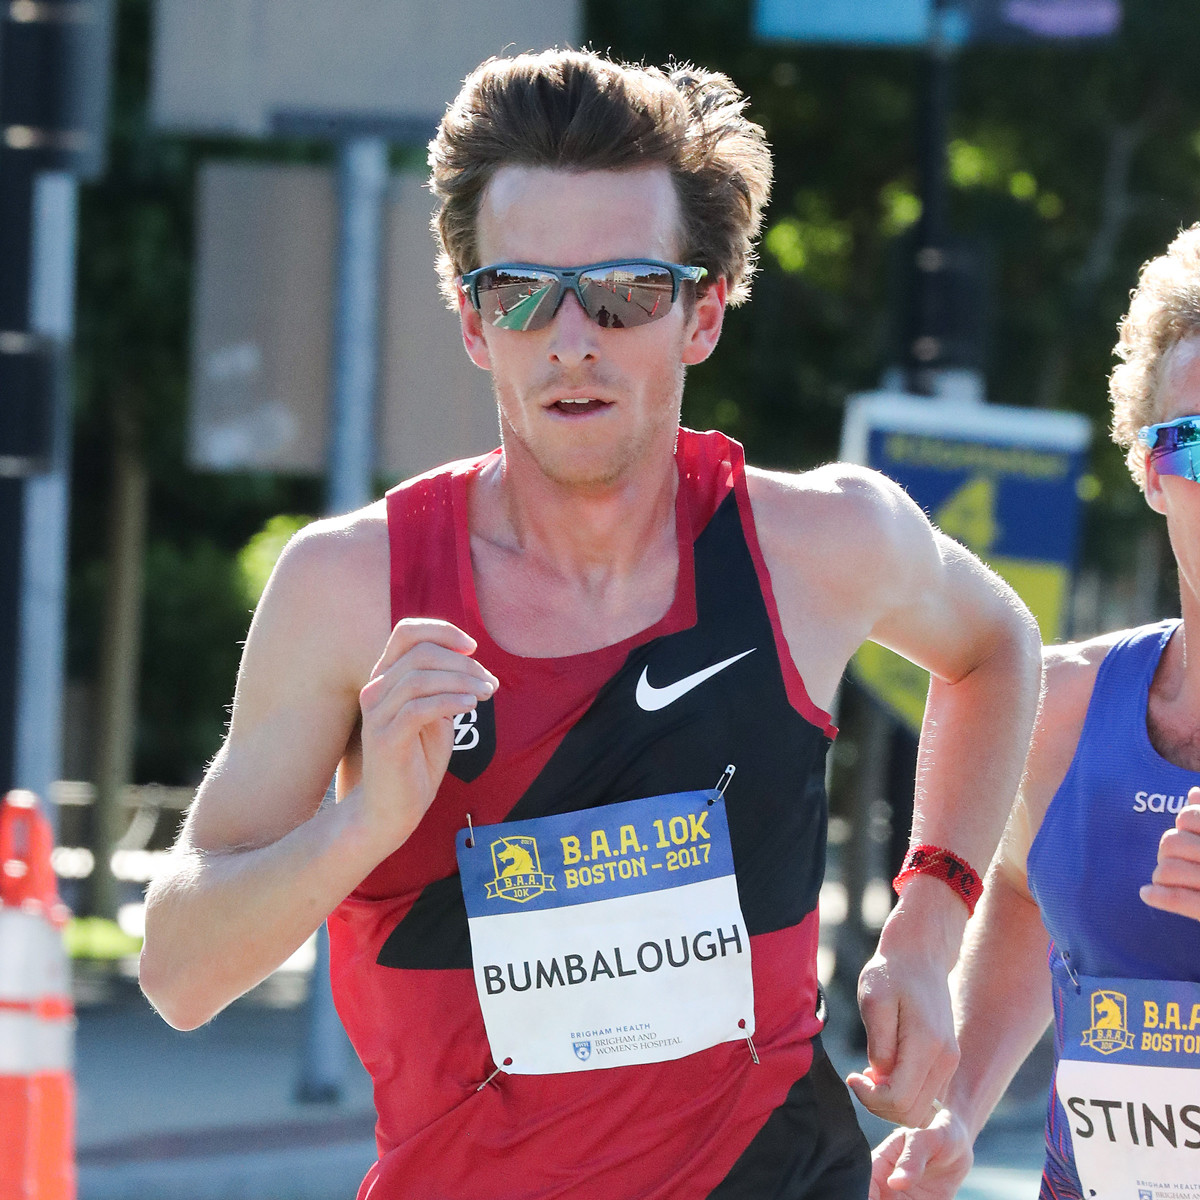 The elite field at the Chicago Marathon keeps growing with more depth